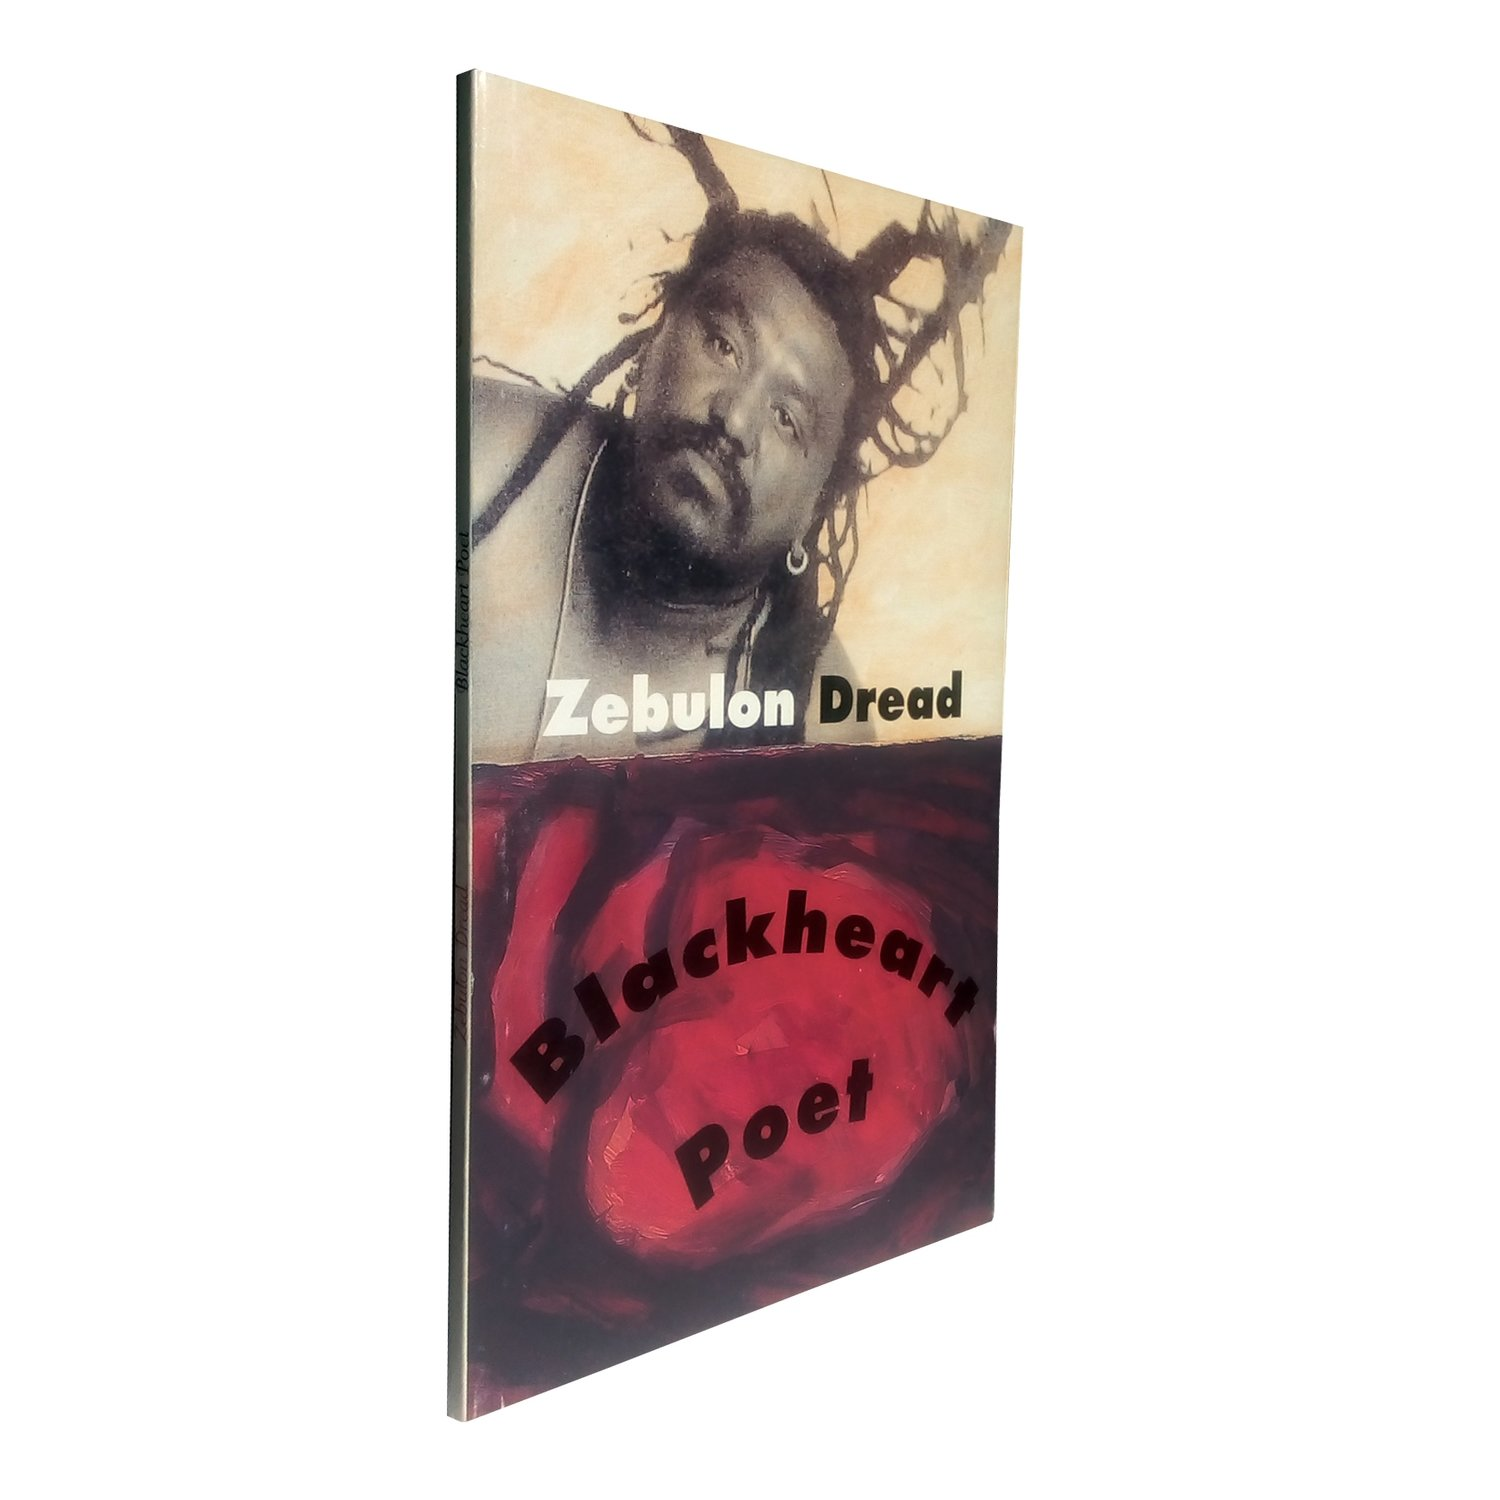 Black Heart Poet by Zebulon Dread (Zebulon Dread, 1999)